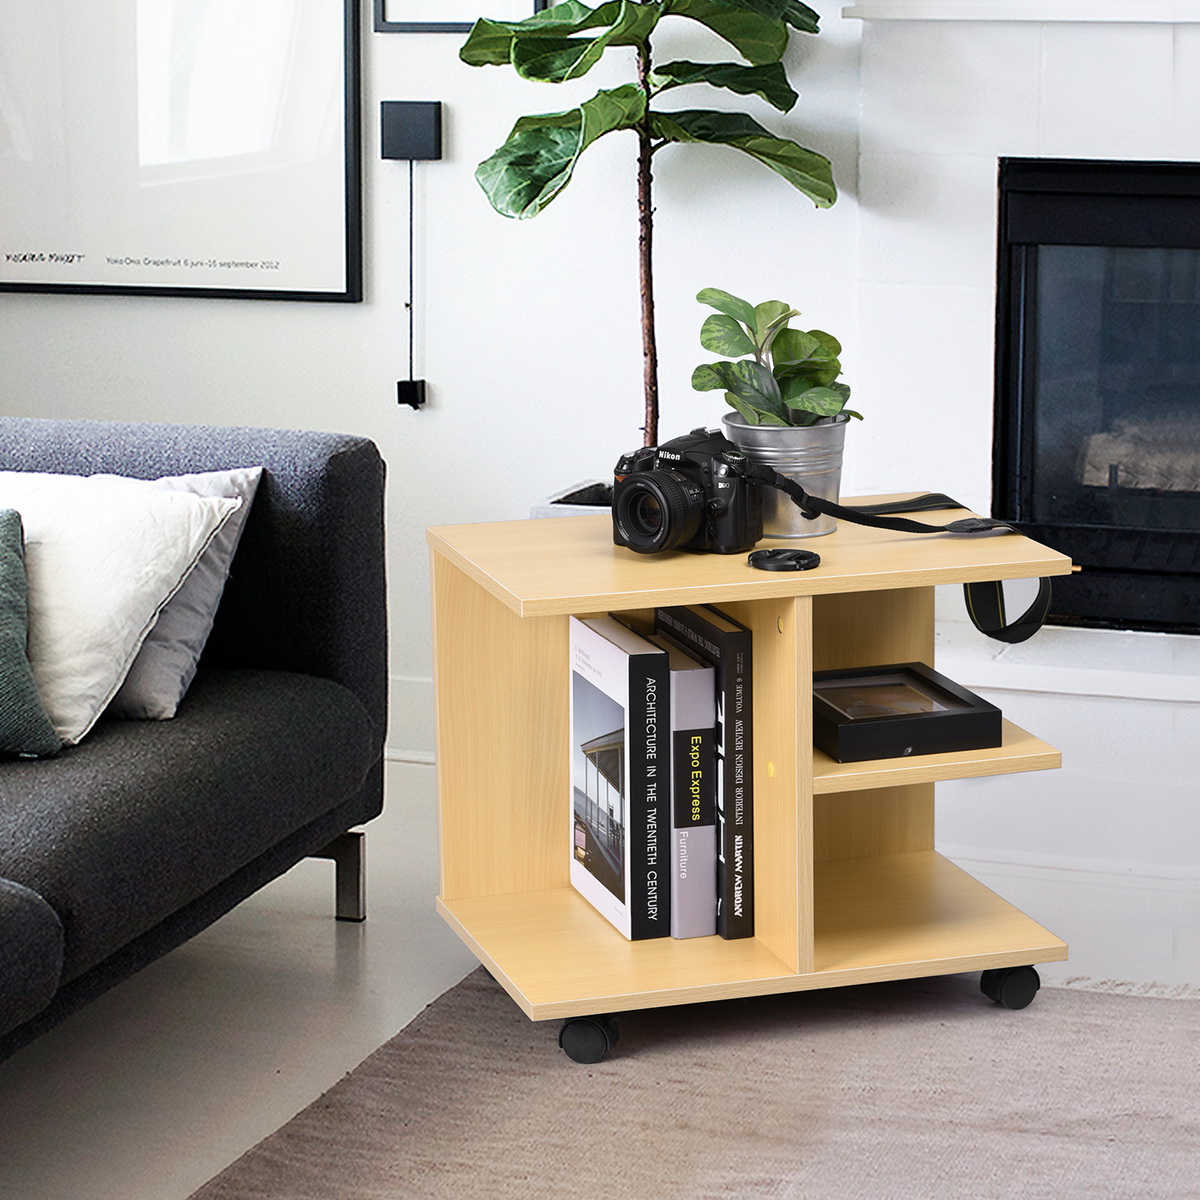 Meuble T L Tv Table Basse D Appoint Chevet Roulettes Etag Re  # Table Tele Etagere